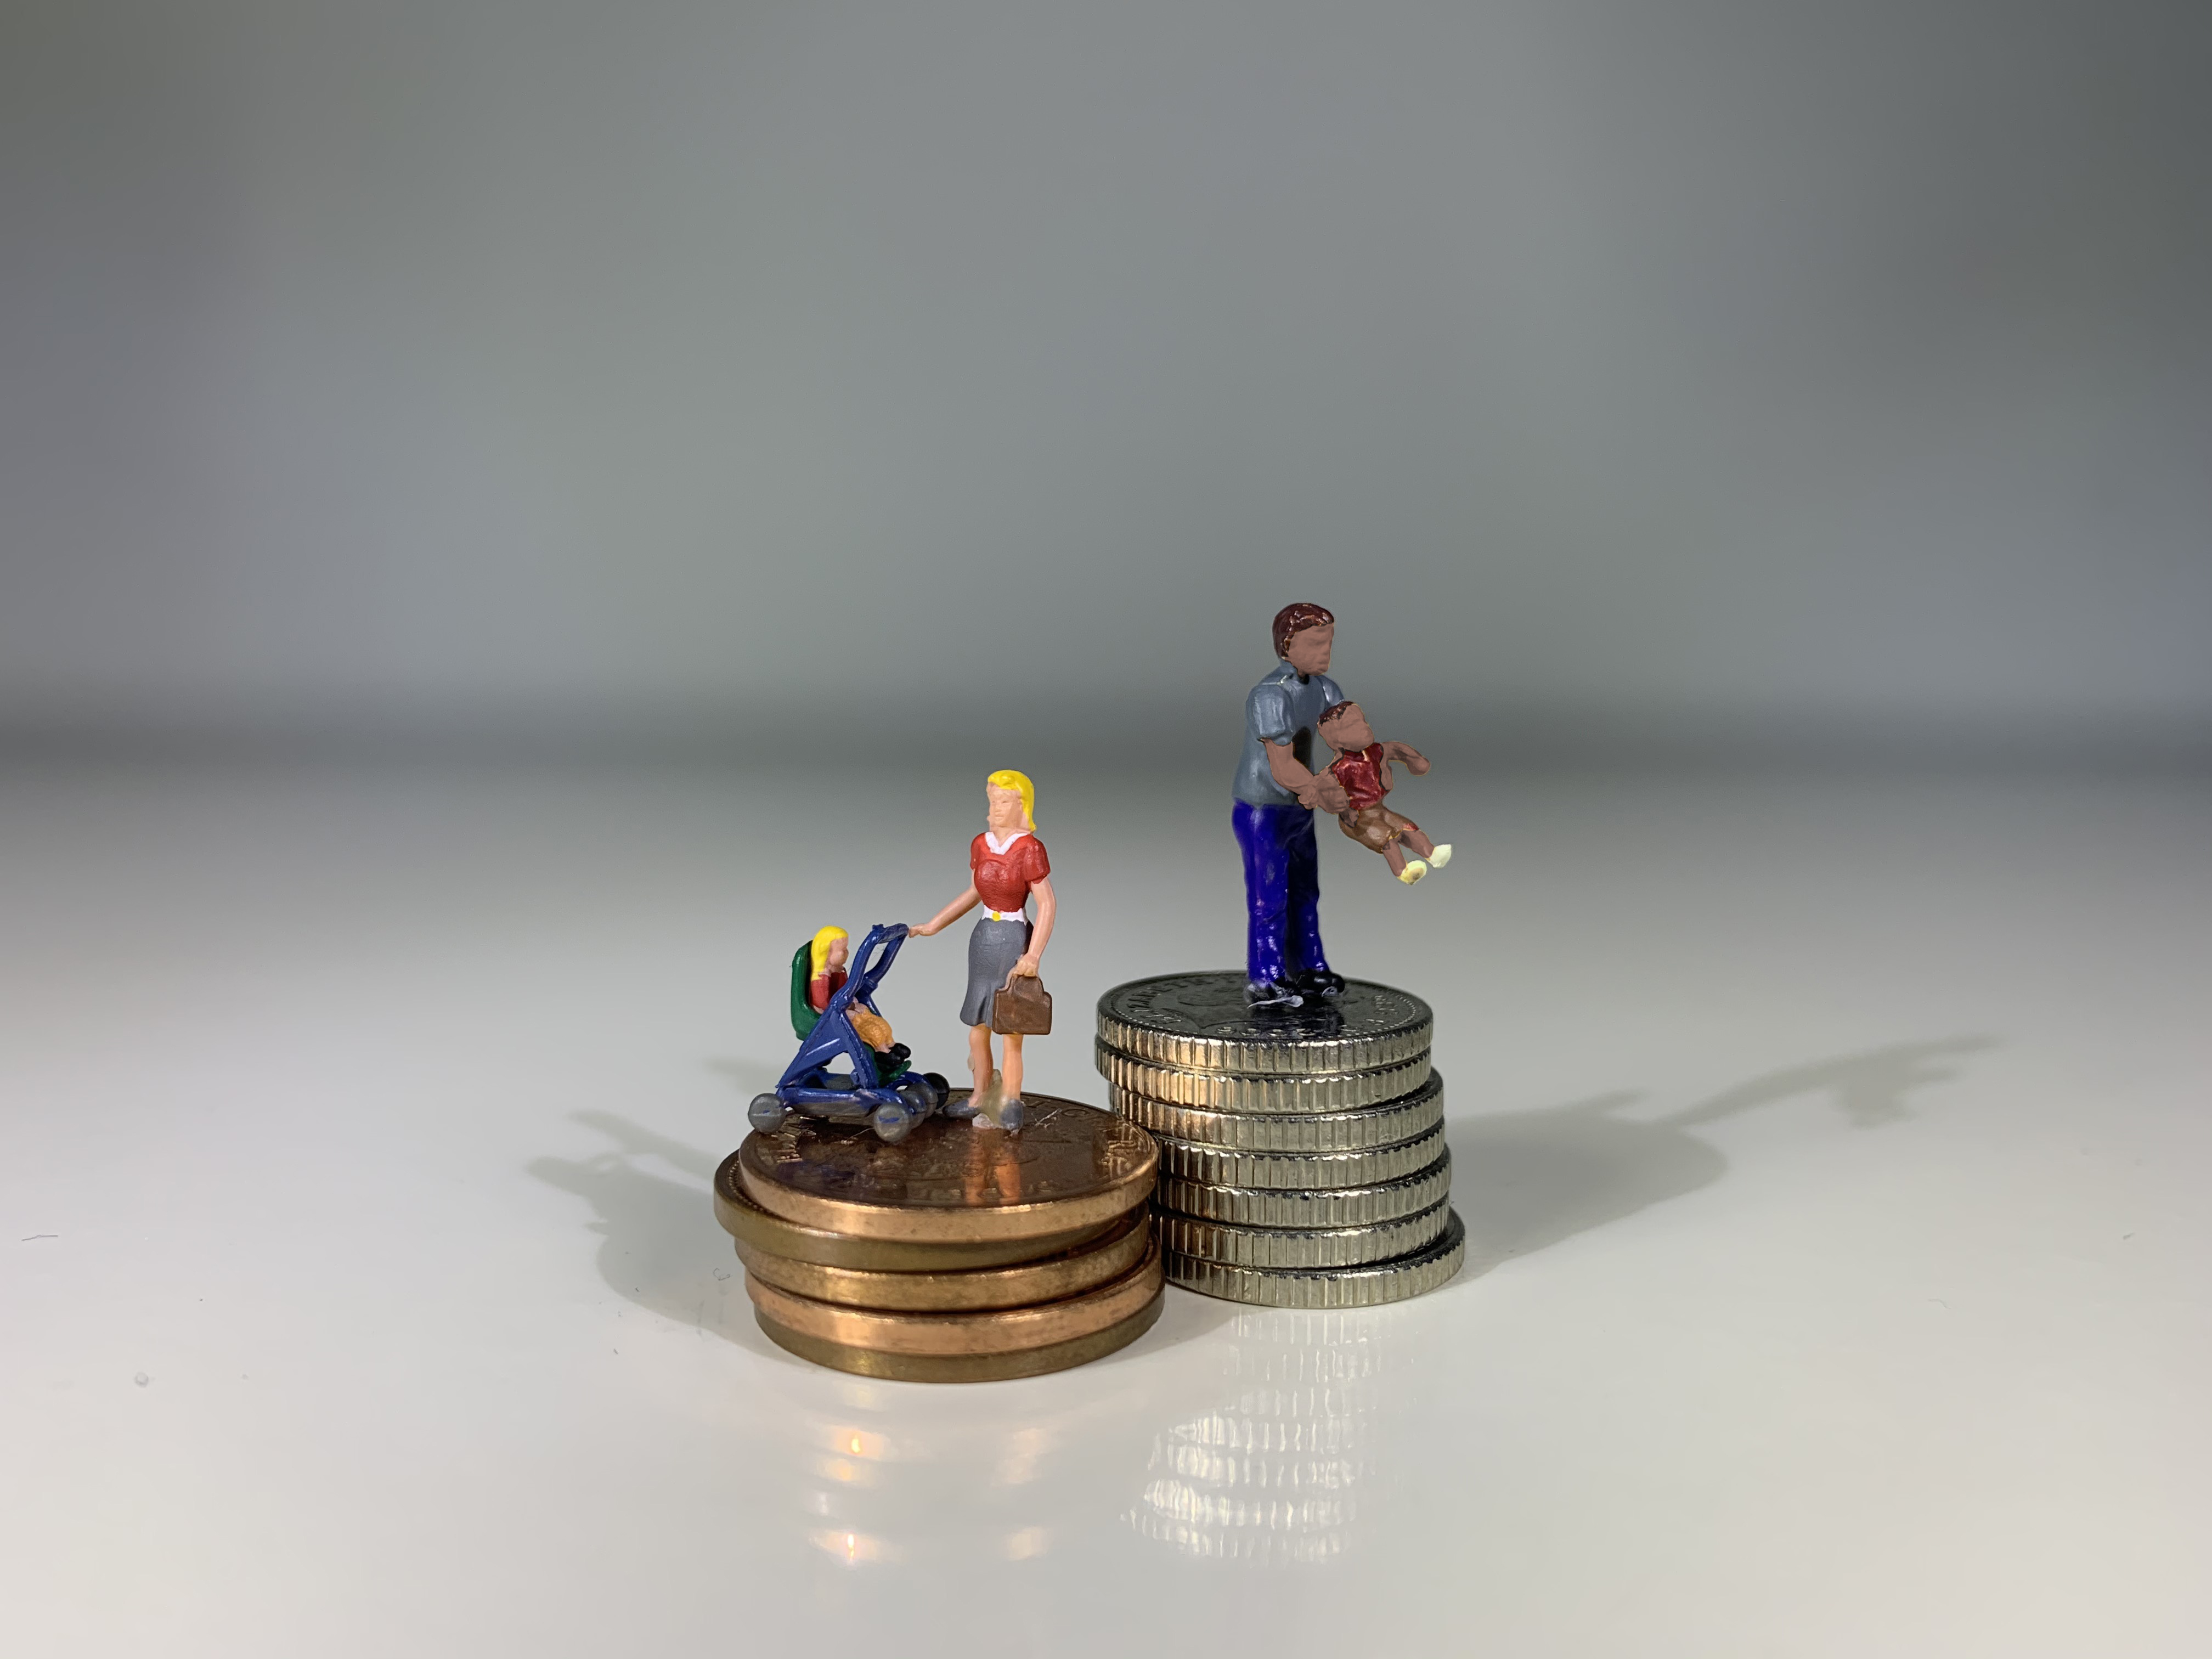 Family playing on top of coins